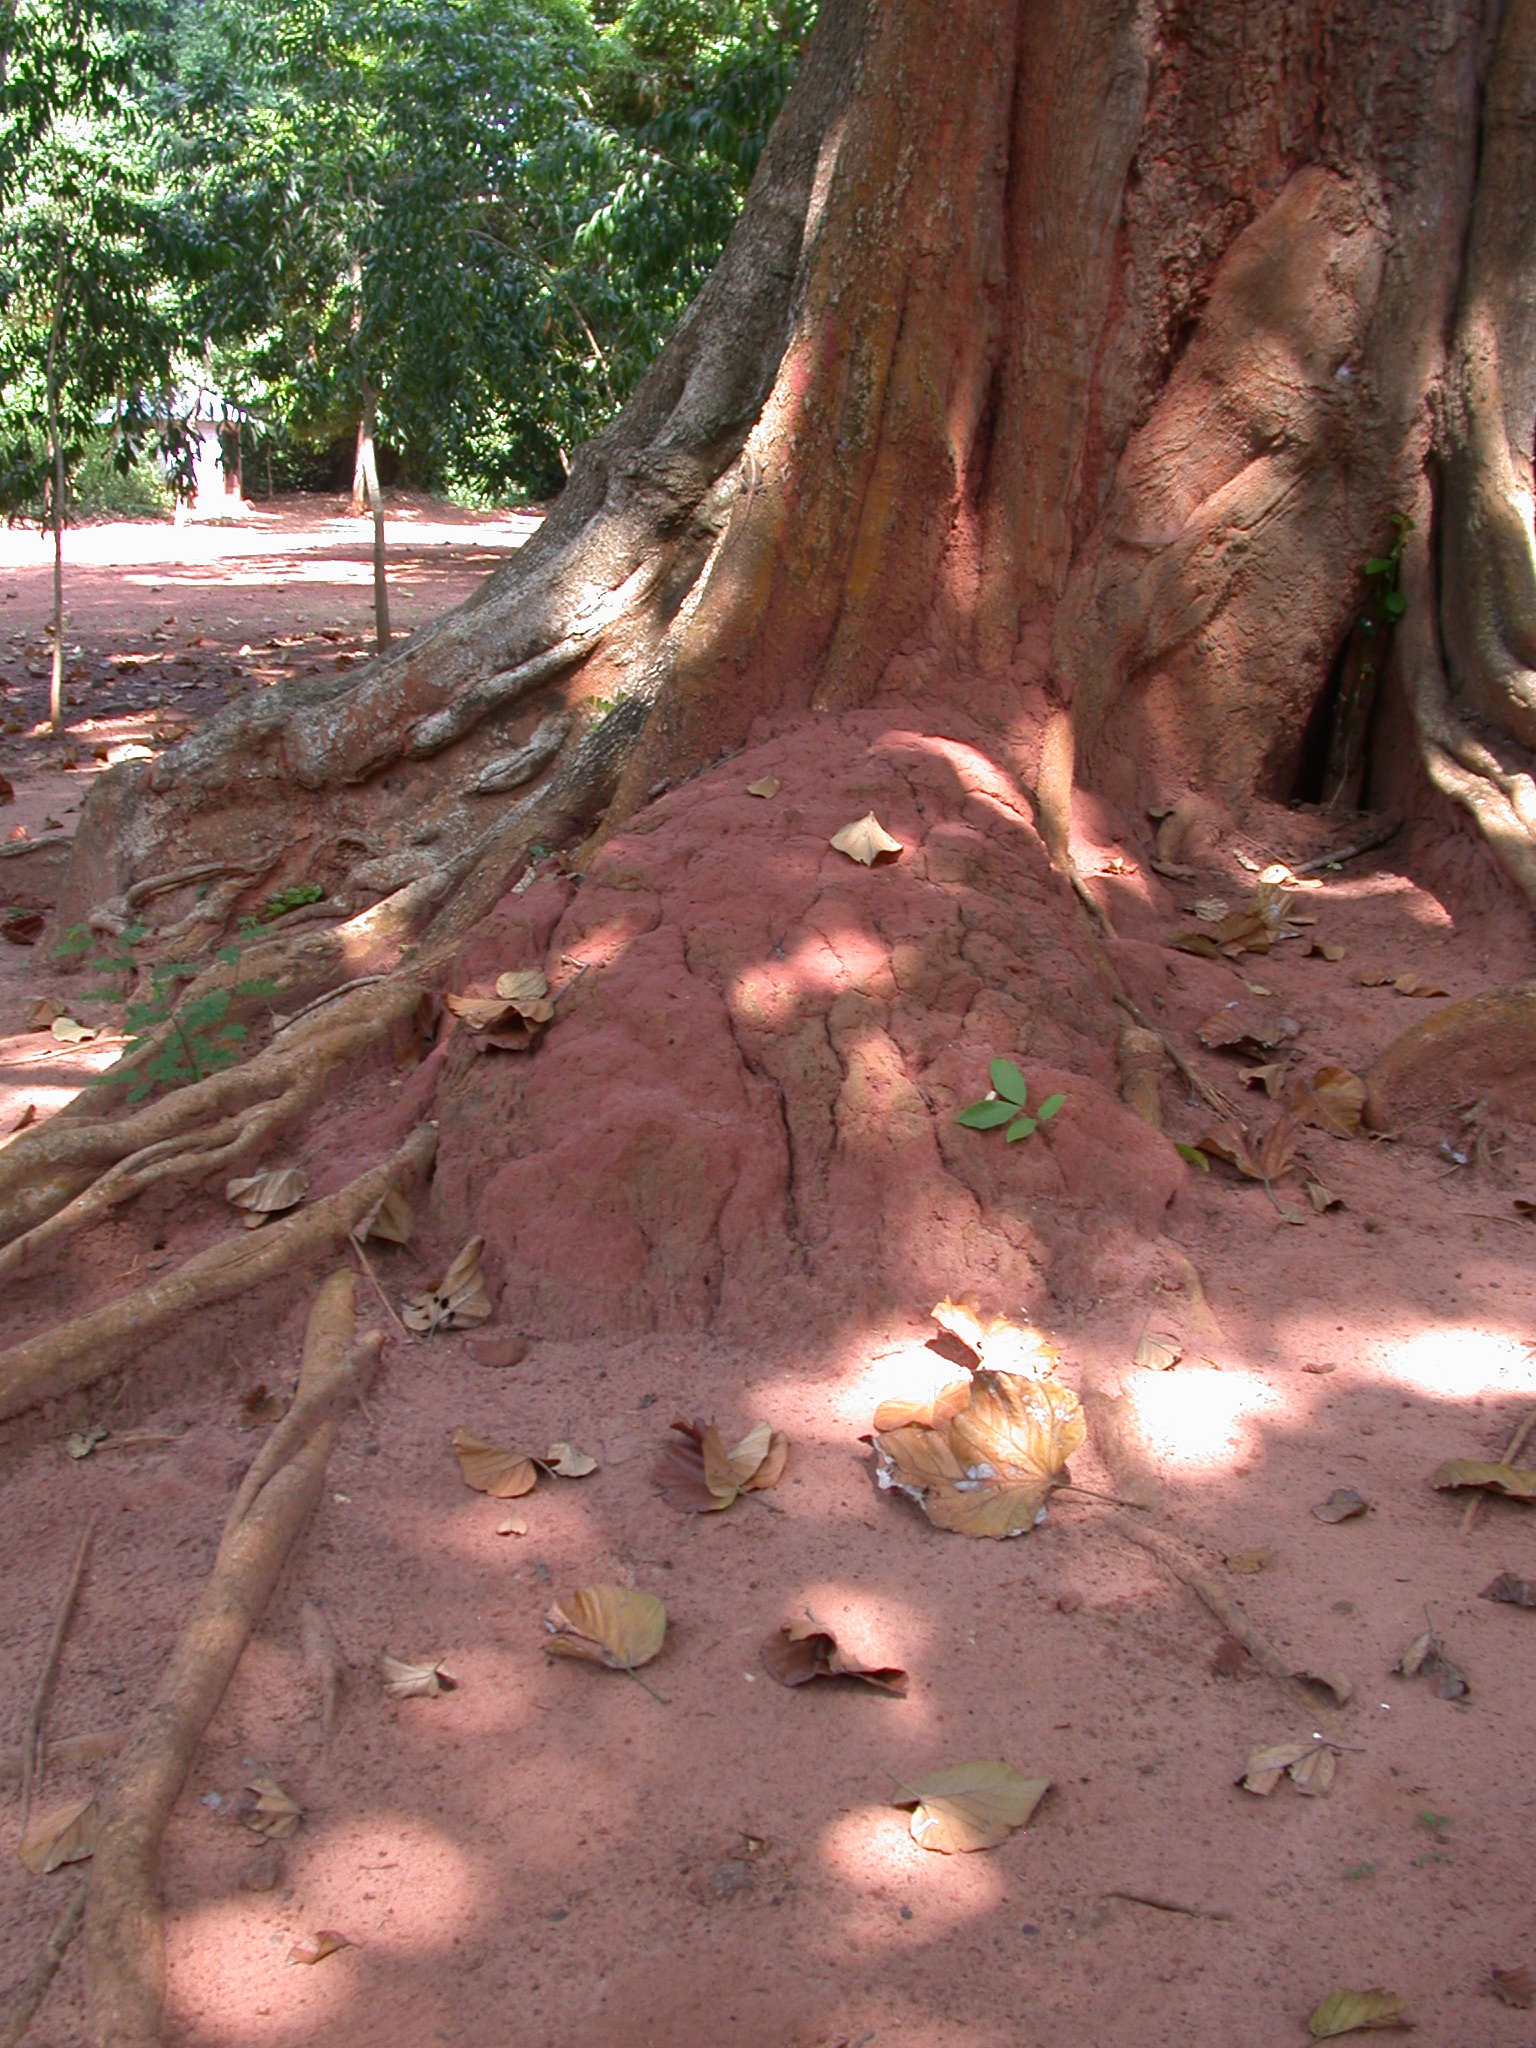 Termite or Ceremonial Mound at Bottom of Trunk of Large Gnarly Tree, Kpasse Sacred Forest, Ouidah, Benin